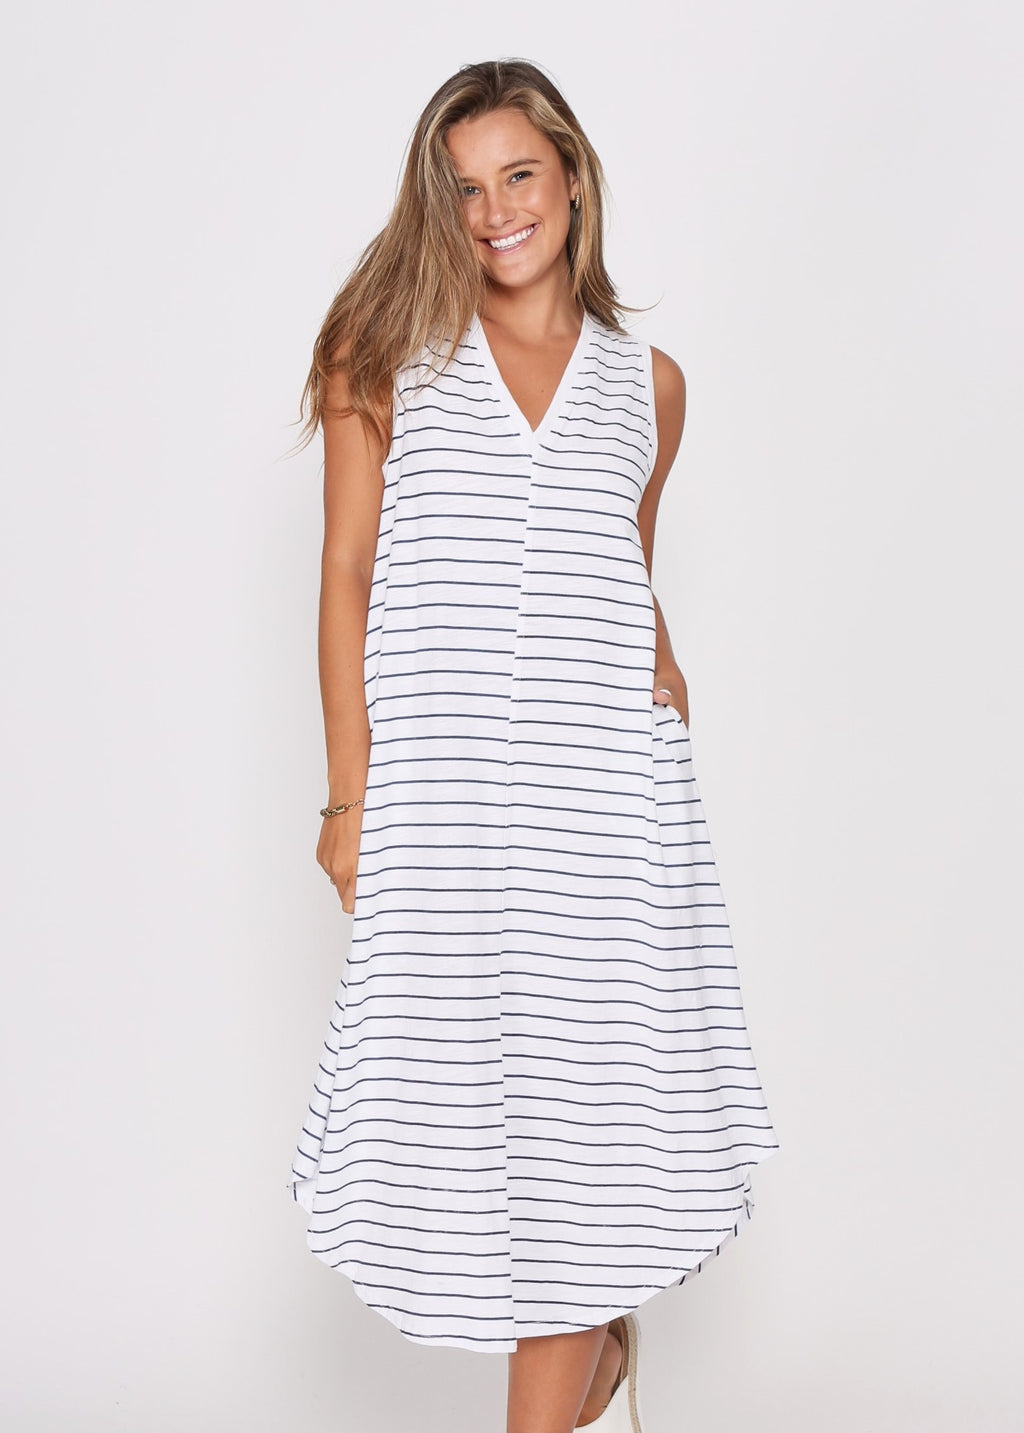 NEW - MARLEY DRESS - WHITE/NAVY STRIPE